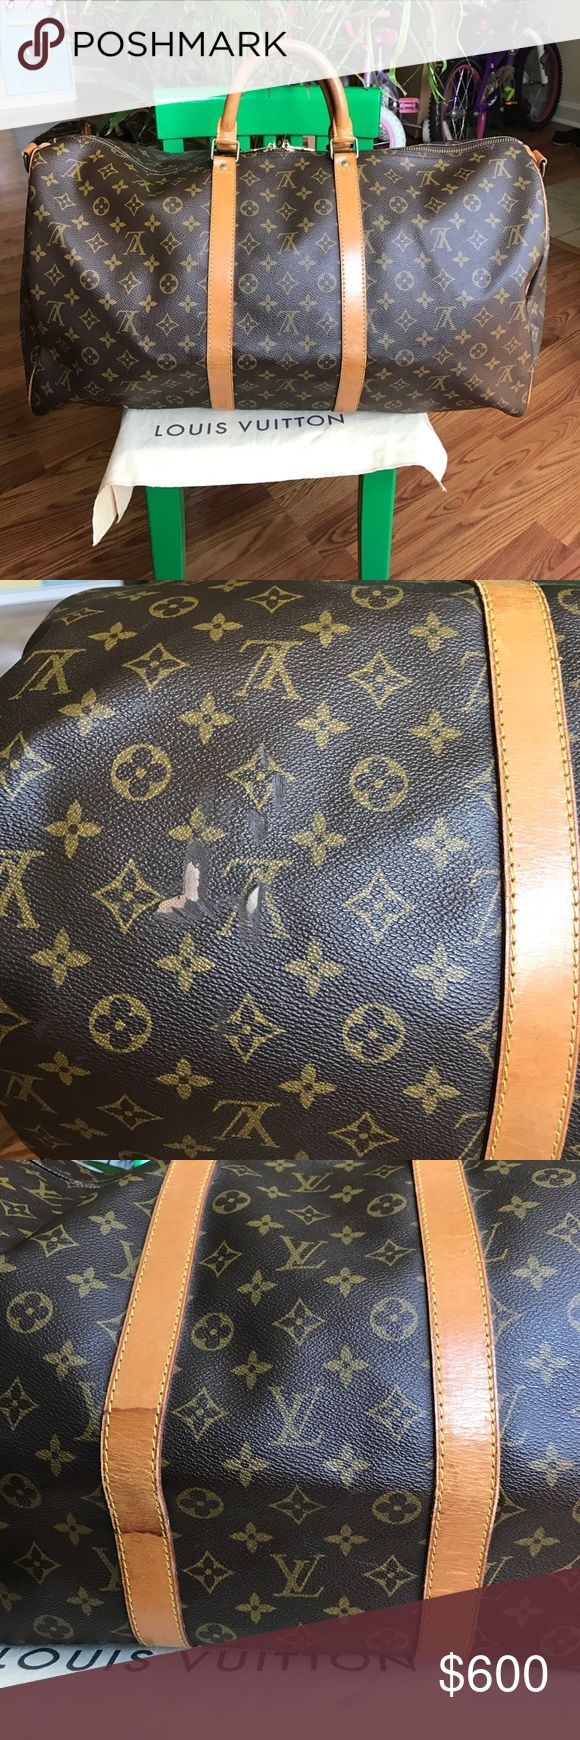 🔴LAST PRICE🔴Louis Vuitton Keepall Bandoulièr 55 Louis Vuitton Keepall Bandoulièr 55. Obvious signs of use such as stains and scratches. Inside looks ok with few stains. Handles are very dark. A burn mark on bottom. Brassware has peeling. No strap or other accessories included. It will be shipped by itself. Lots of life left but with wear. Corners have scratches but no piping is showing. Some oxidation can be seen on studs. An old smell can be detected. Date code is fading SP 0051. NO…